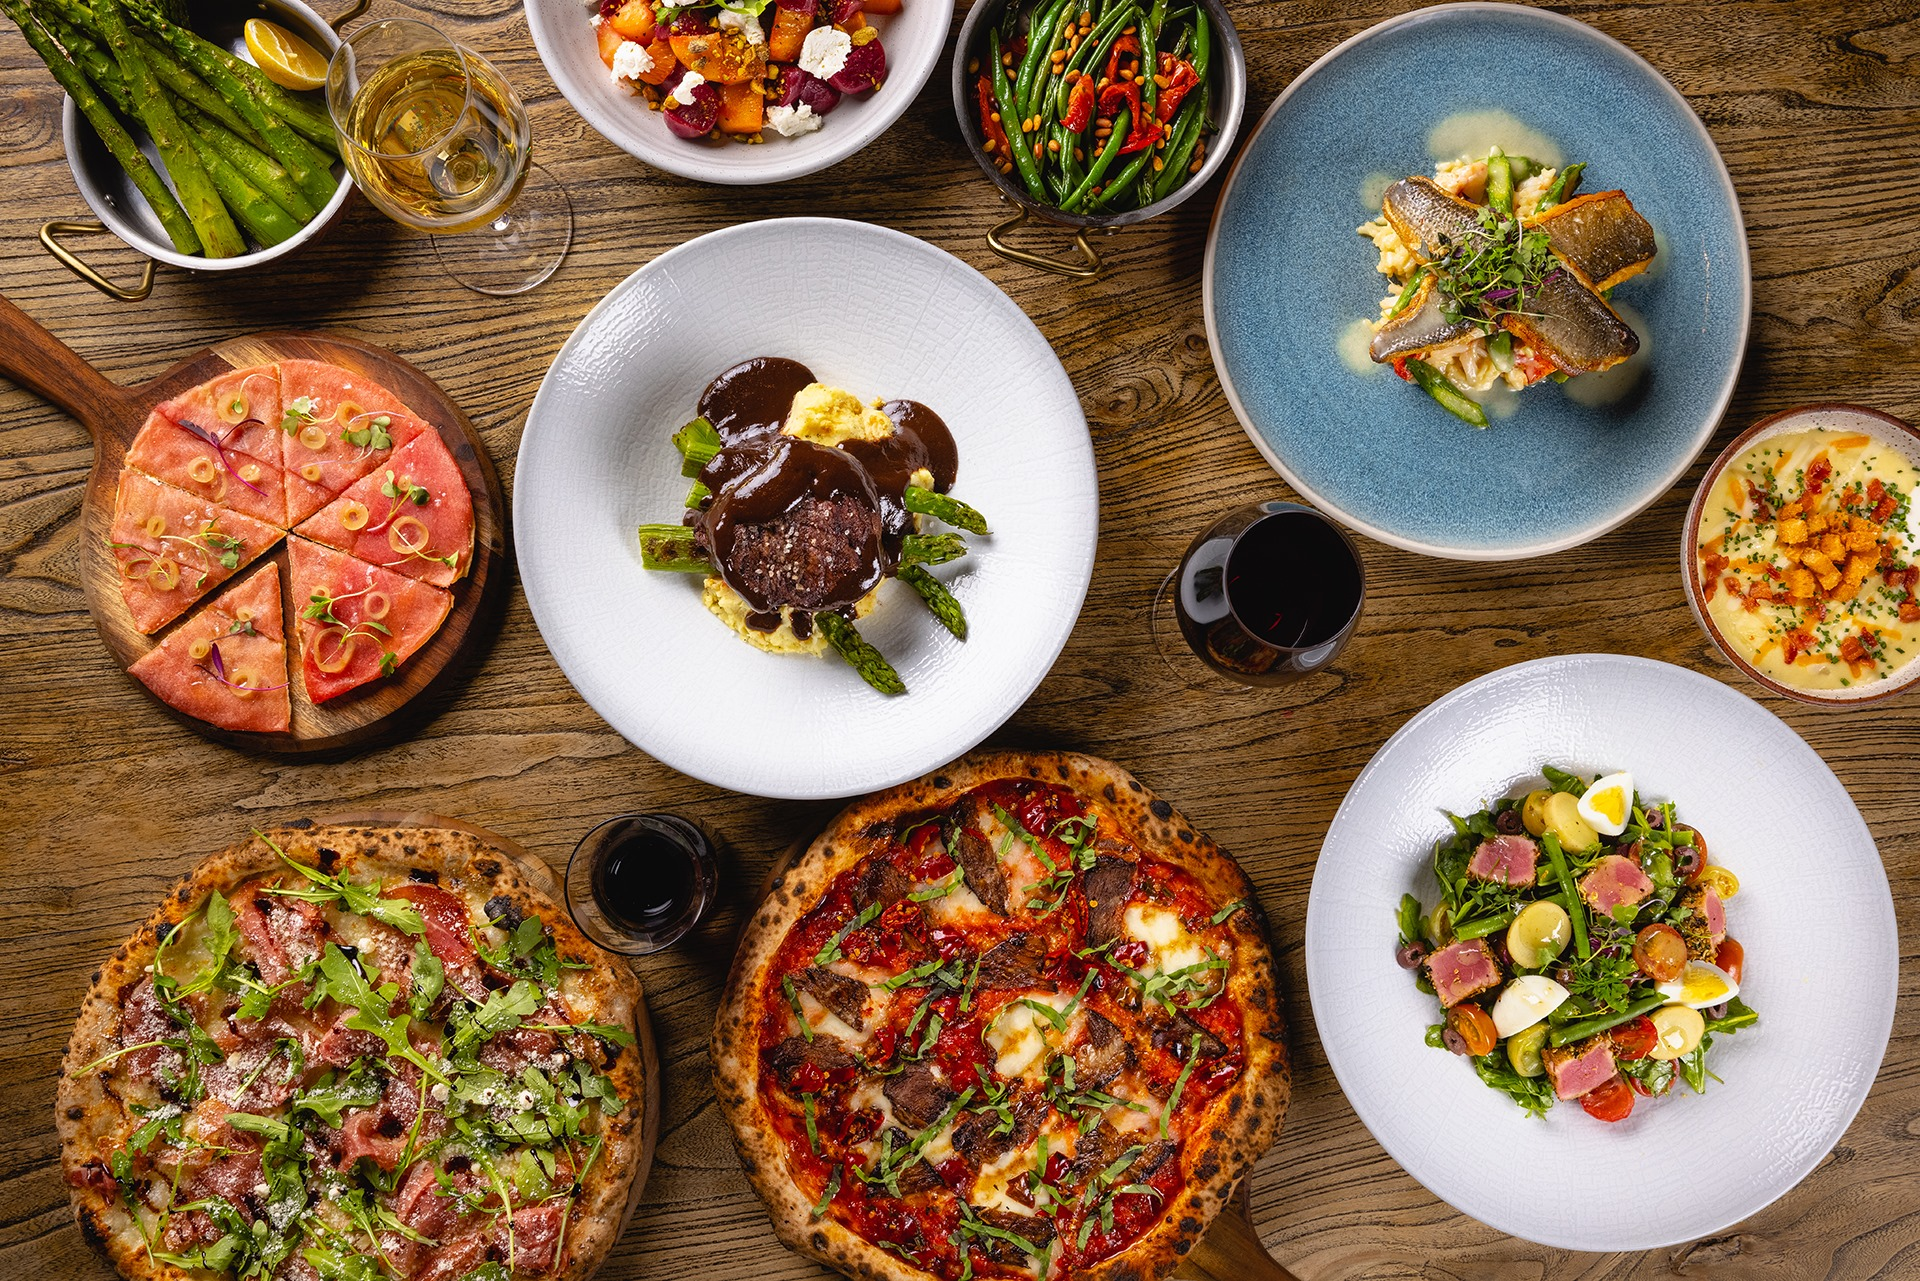 An overhead view of pizzas, a pasta dish, beef, and more on a wood table